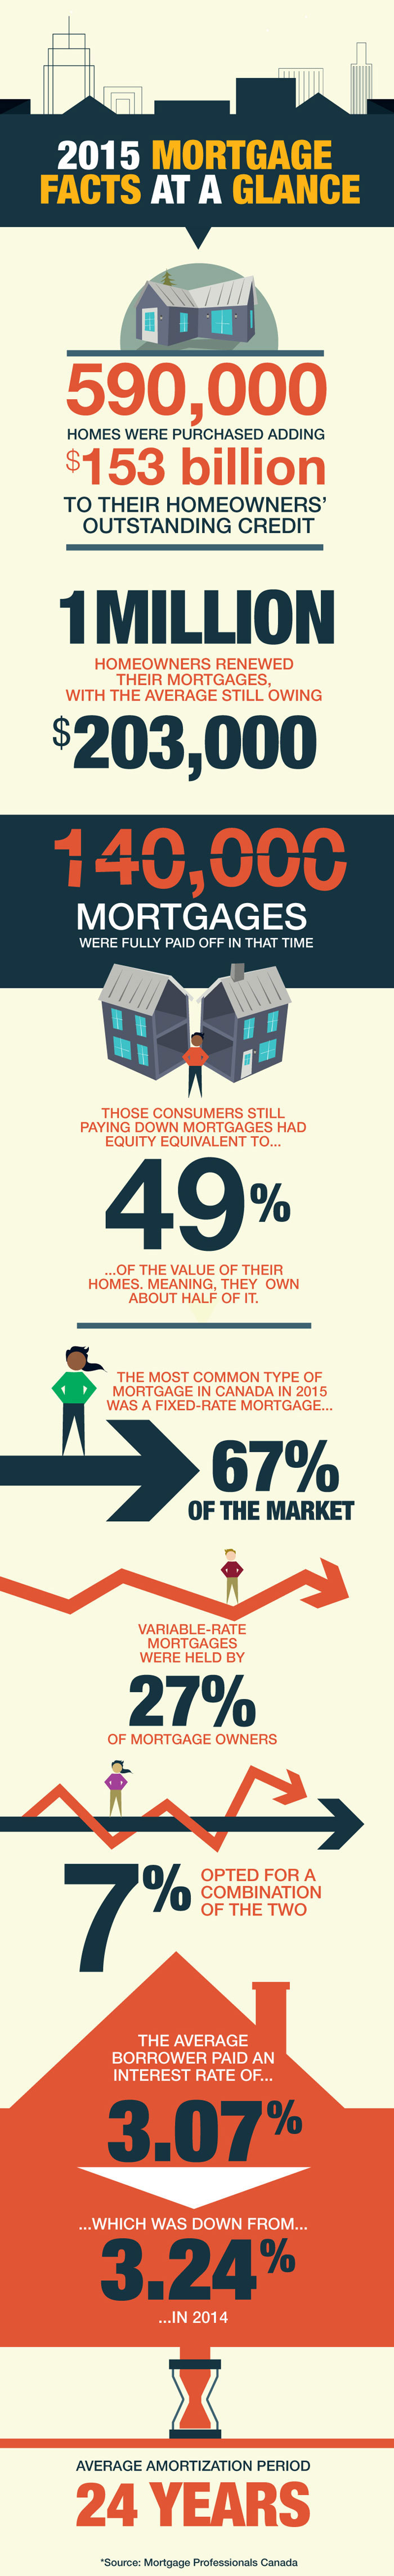 2015 Mortgage Facts at a Glance